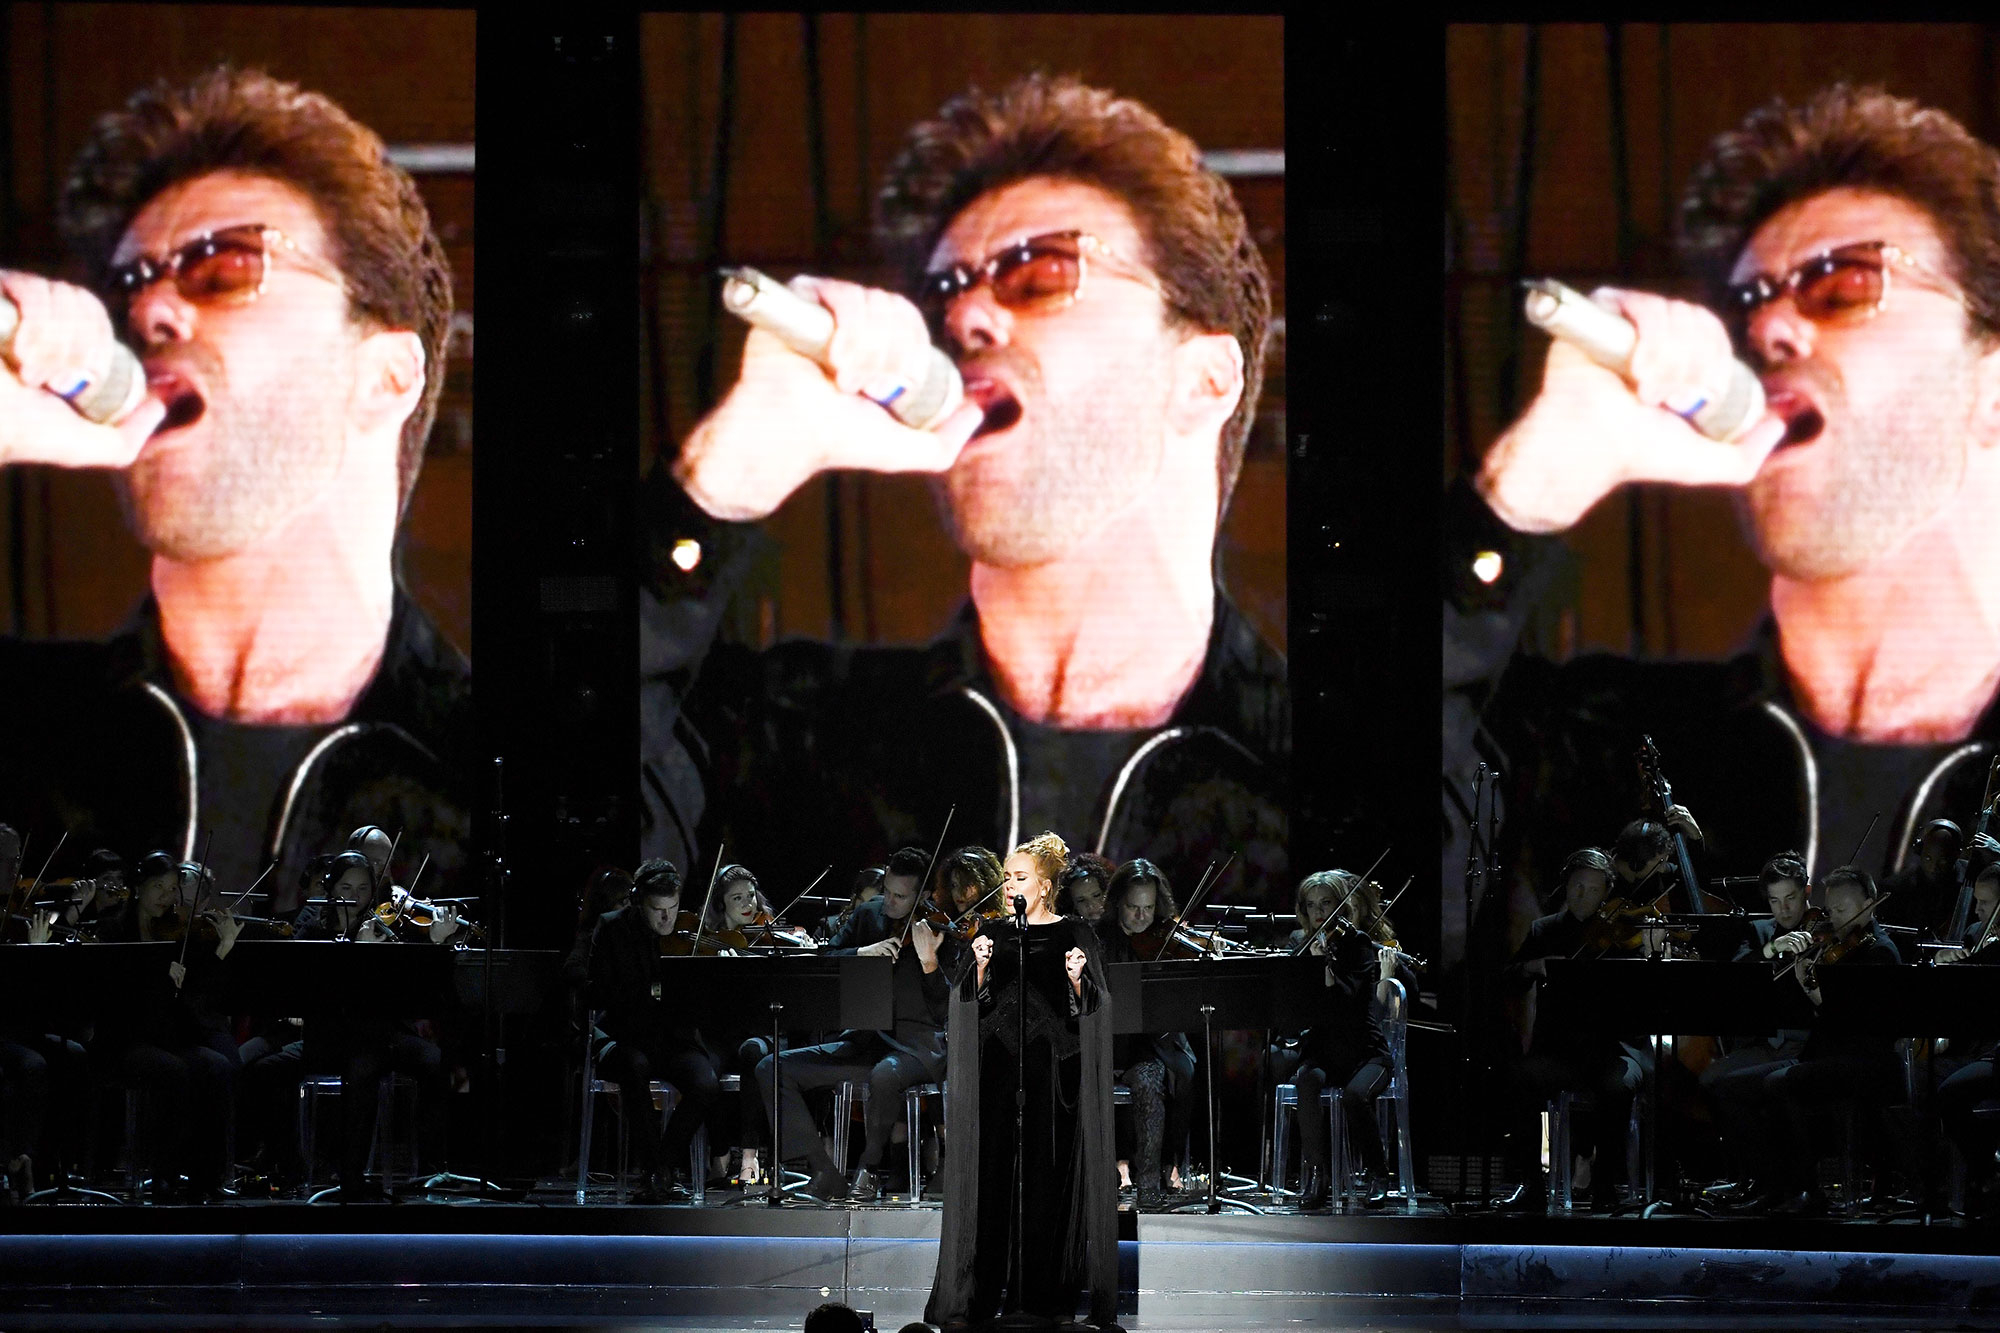 An image of the late George Michael is projected on a video screen while recording artist Adele performs on stage.